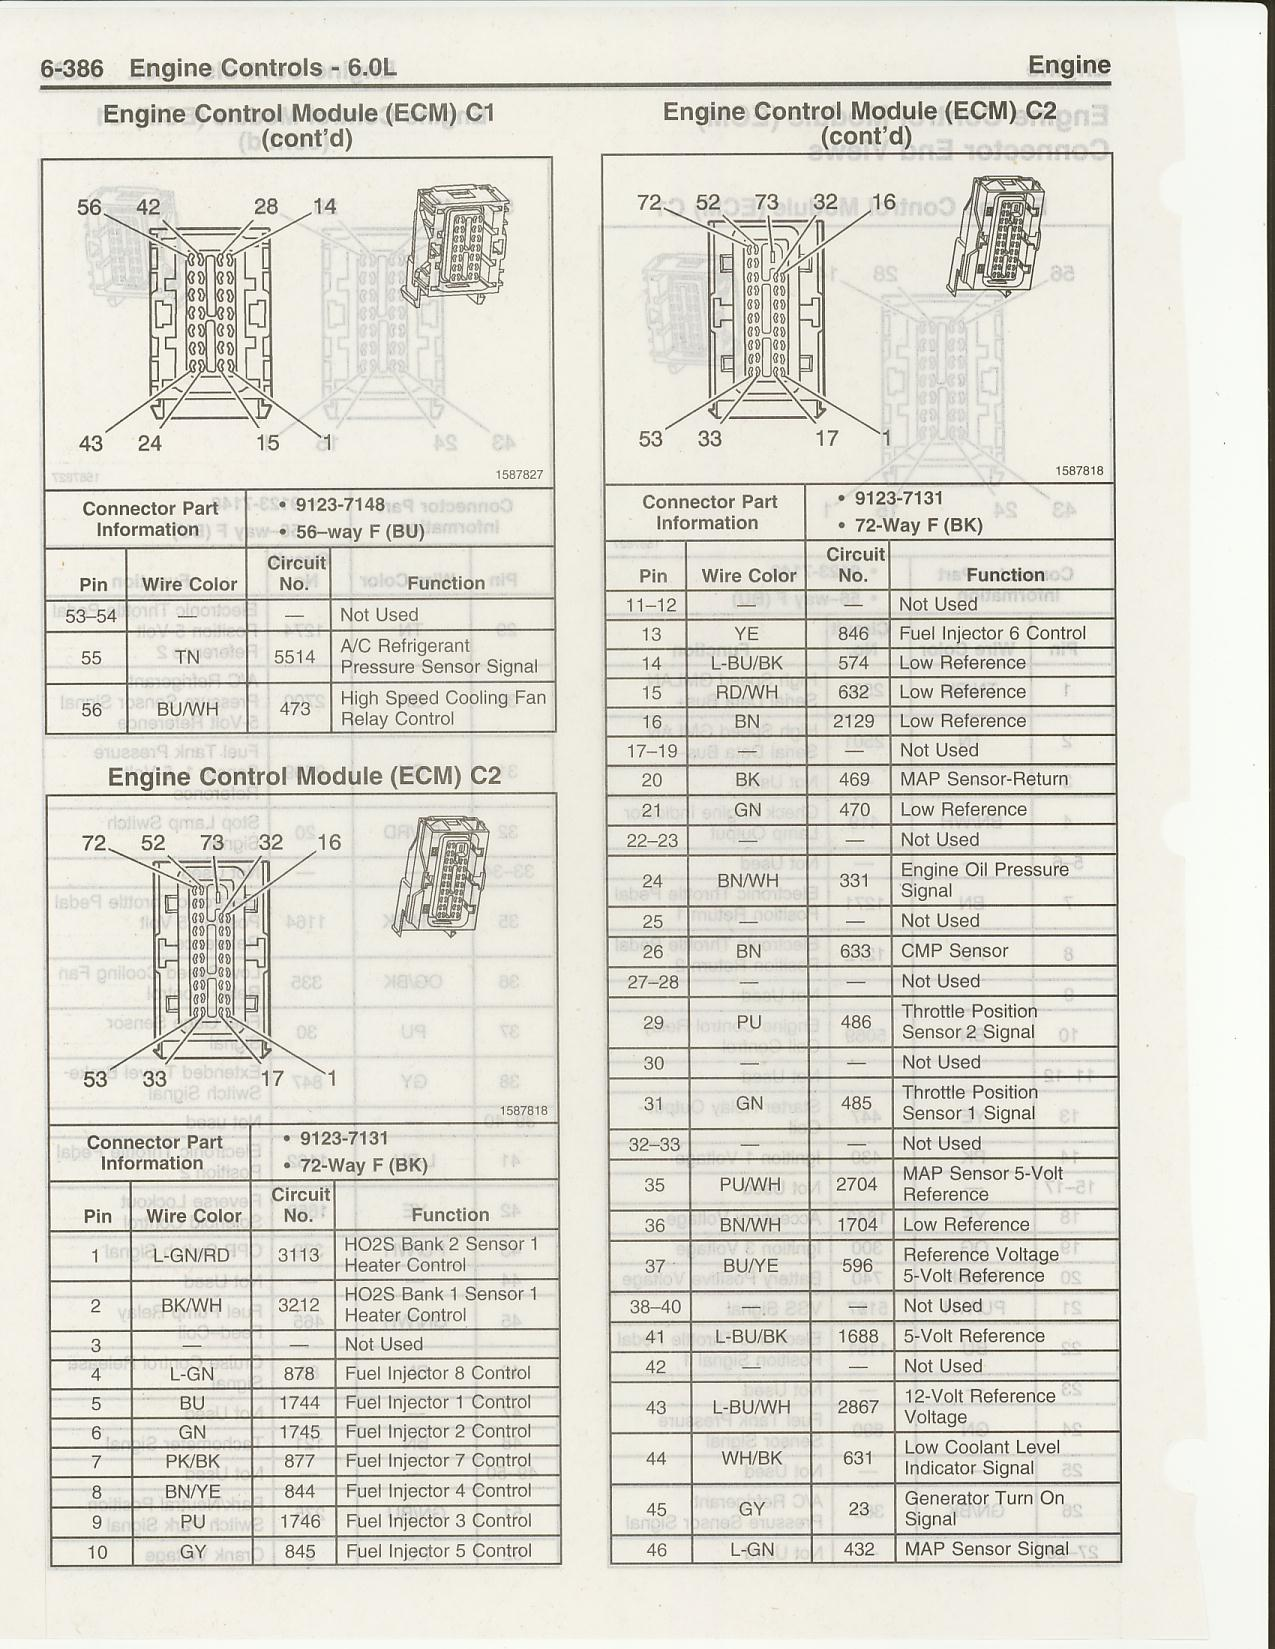 Pinouts And Wiring Diagrams Page 4 Ls1tech Camaro Firebird Gm Heater Harness Diagram Ls2 C1 C2